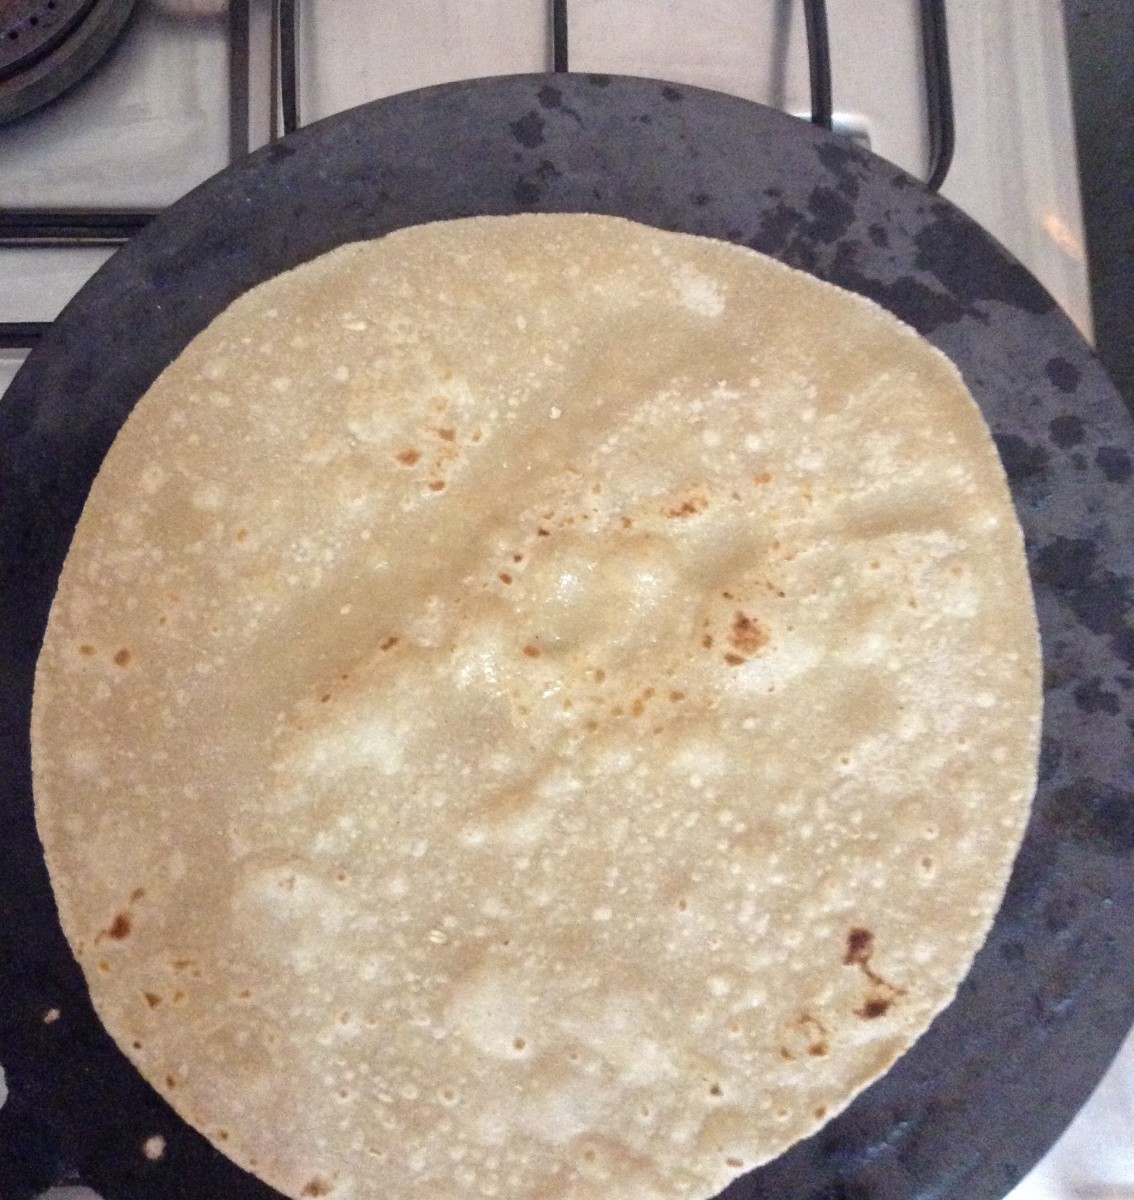 Once the Chapati starts changing color, flip it over. Let it remain on that side for a minute. Press and rotate it using a kitchen towel.